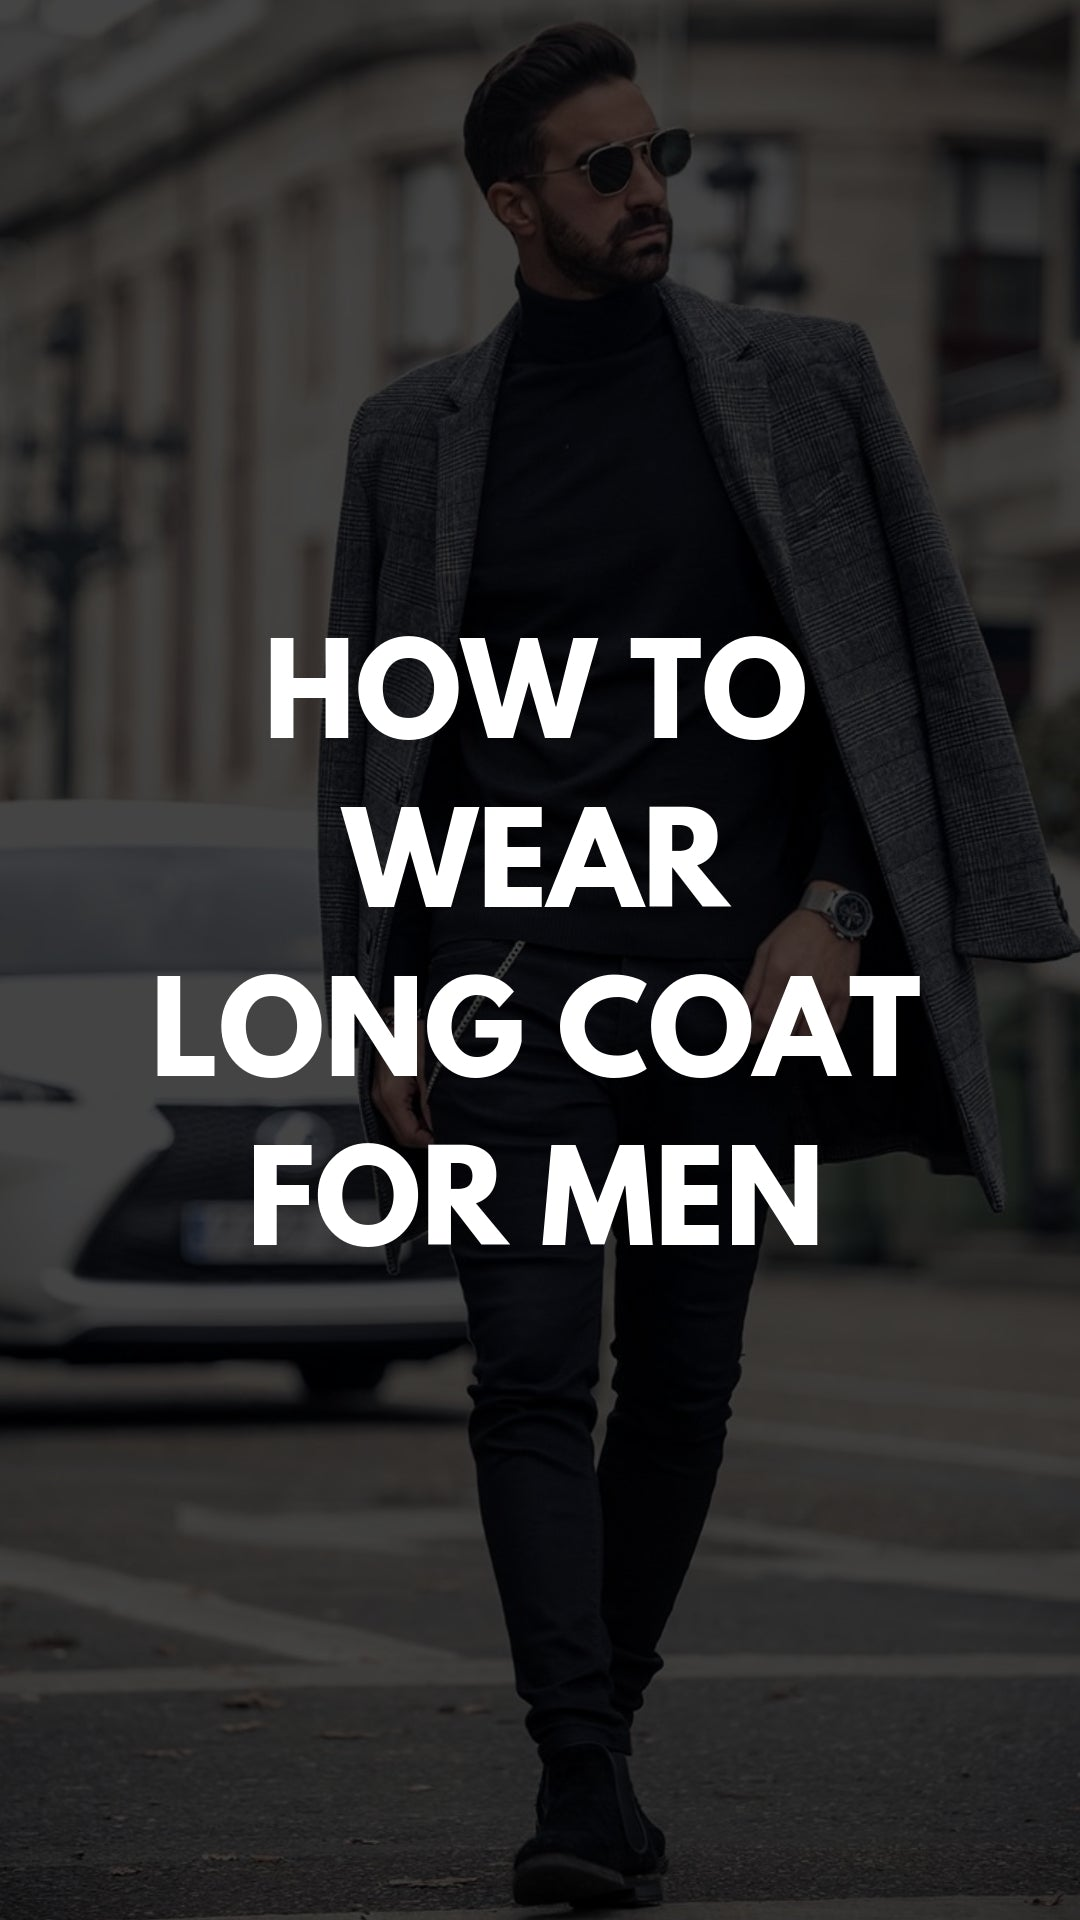 5 Coolest Long Coat Outfits For Men #longcoat #outfits #mensfashion #streetstyle